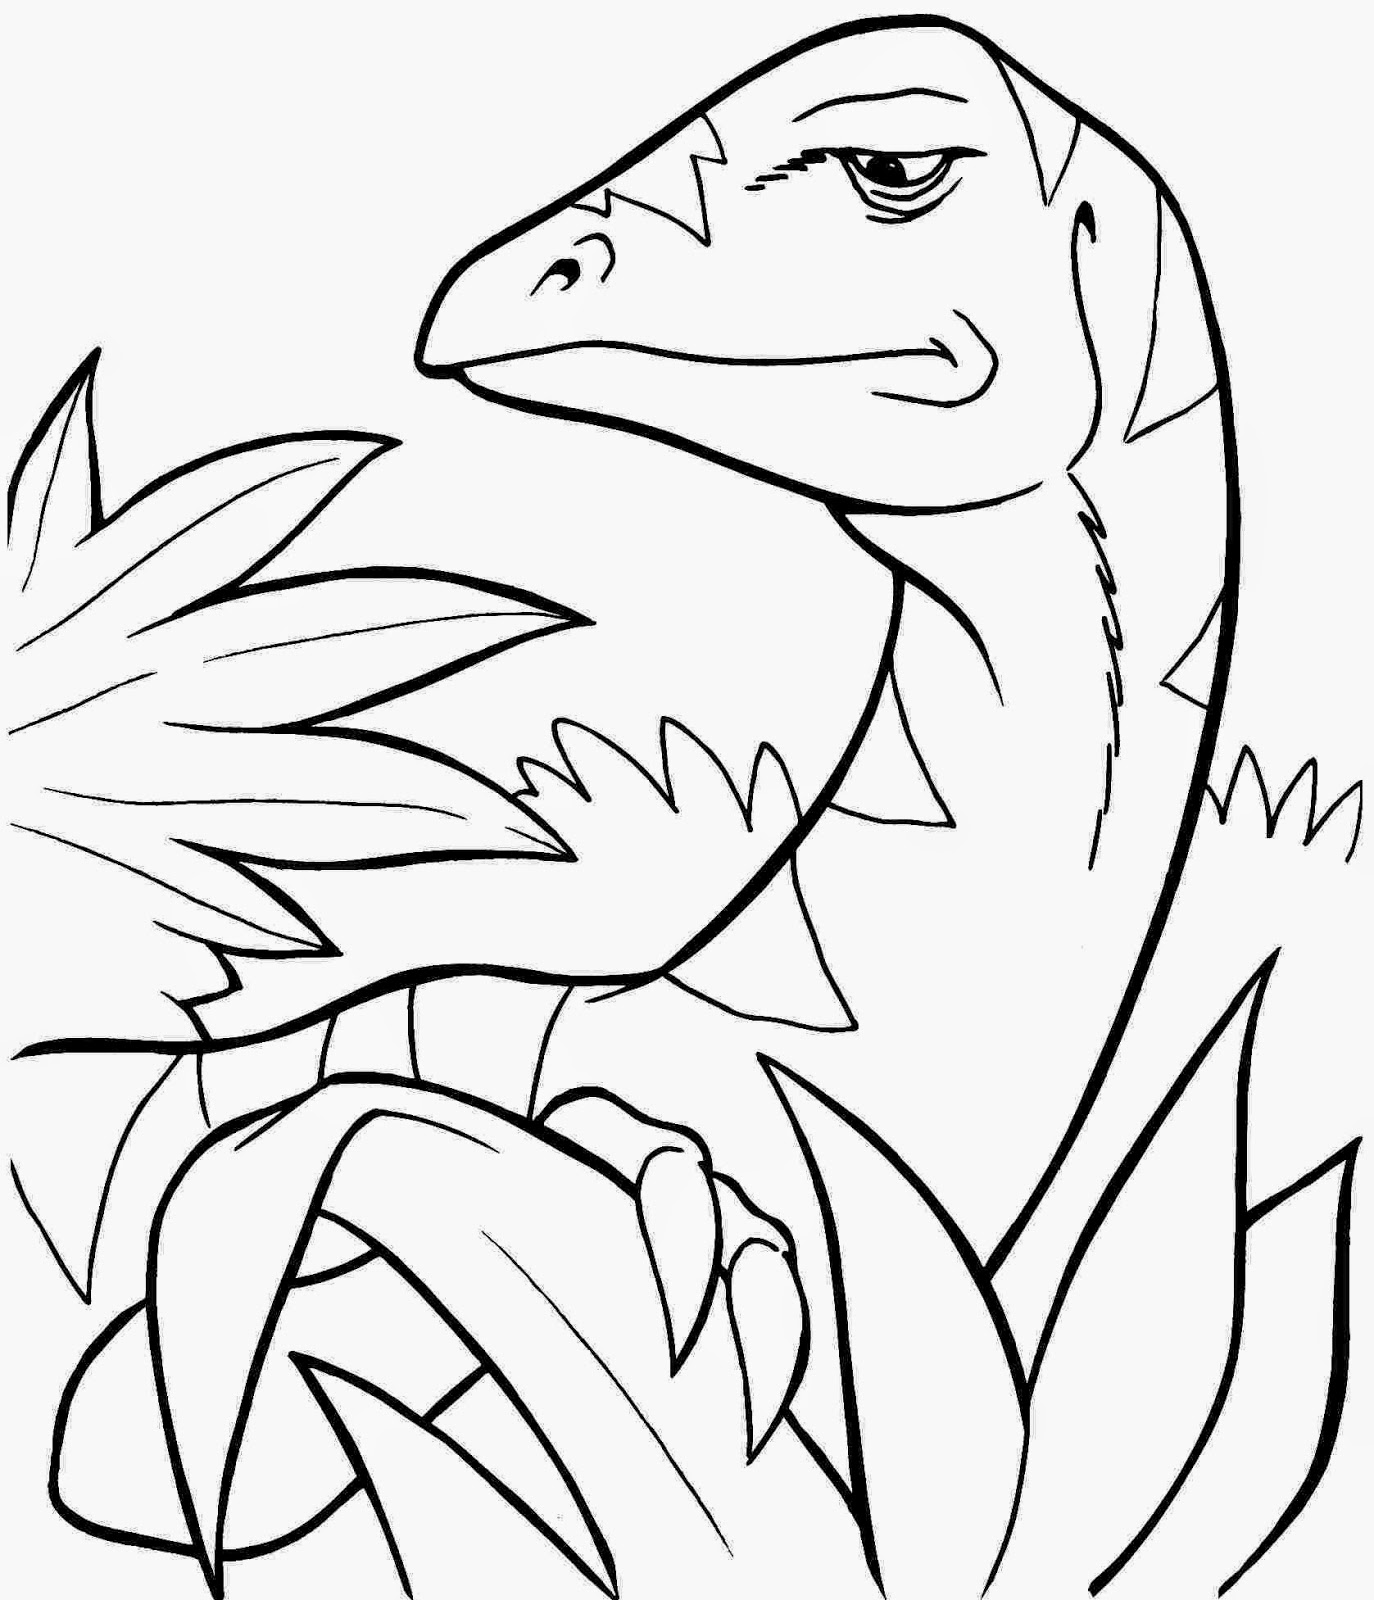 dinosaur colouring pages printable coloring pages dinosaur free printable coloring pages dinosaur colouring printable pages